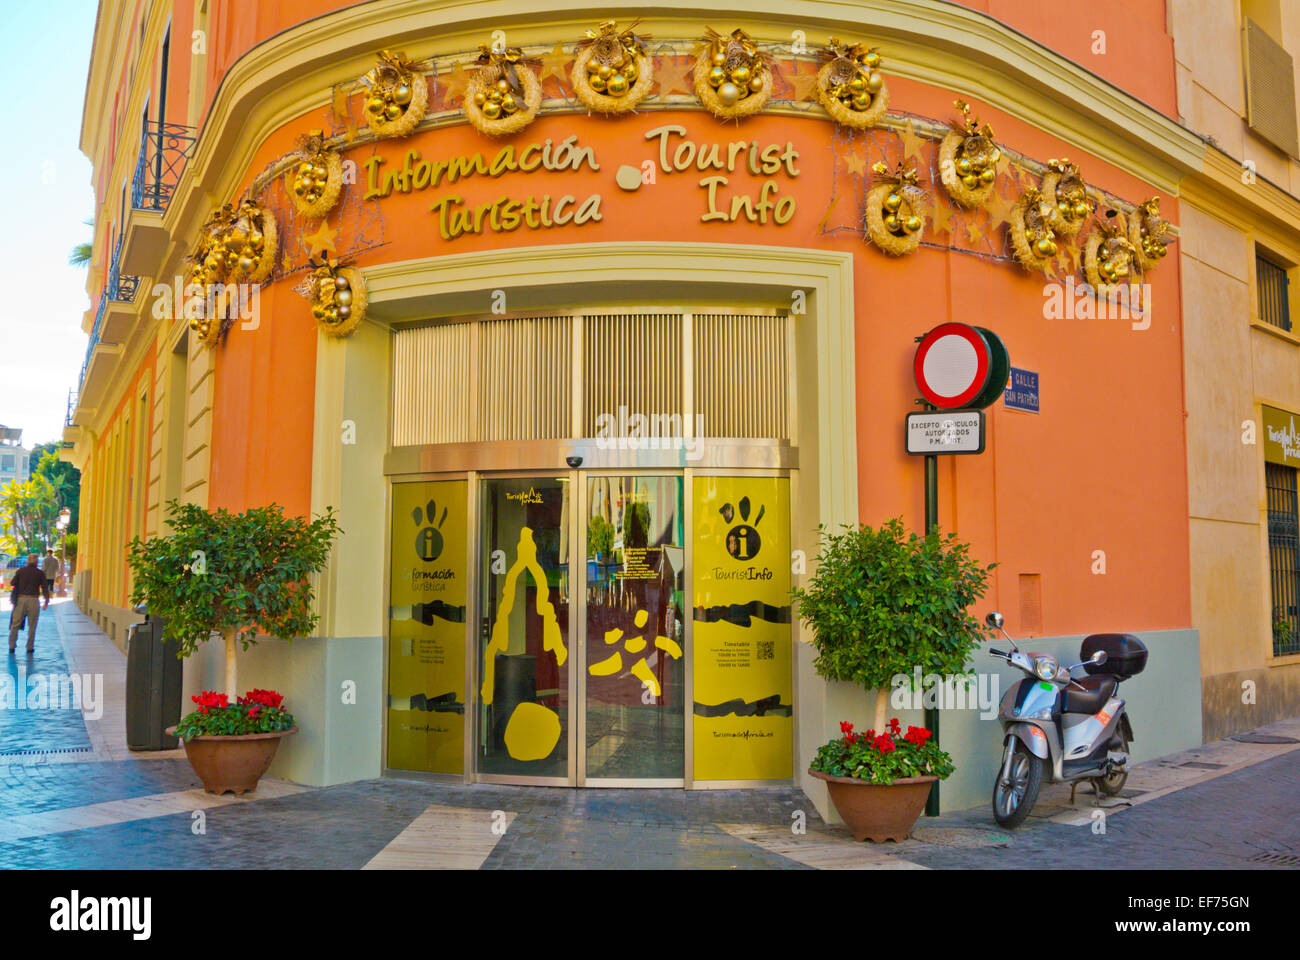 Tourist information office, Plaza del Cardenal Belluga square, old town, Murcia, Spain - Stock Image